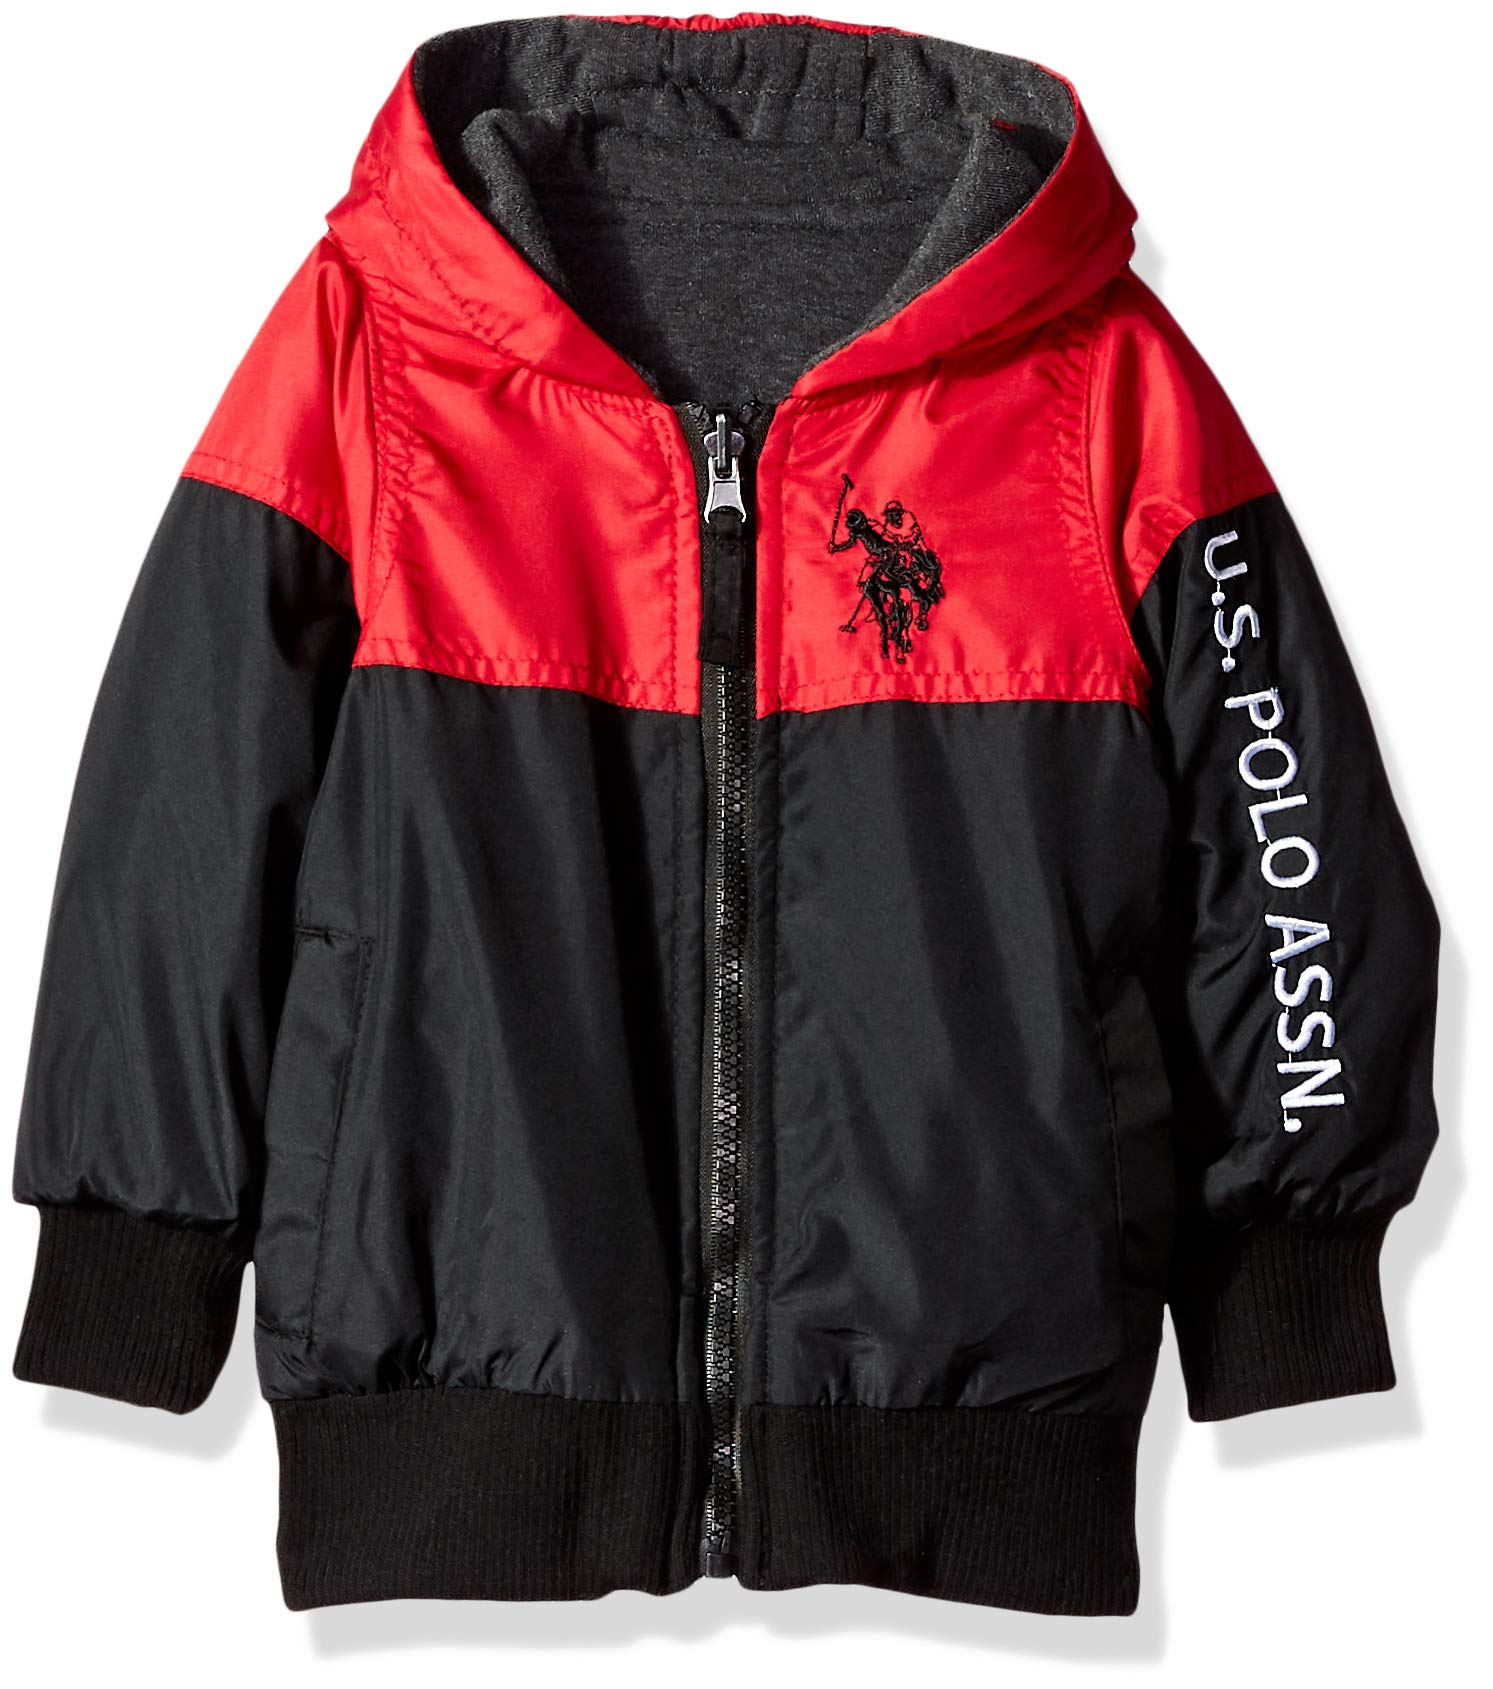 US Polo Association Boys Midweight Bubble Jacket, Black/Red, 14/16